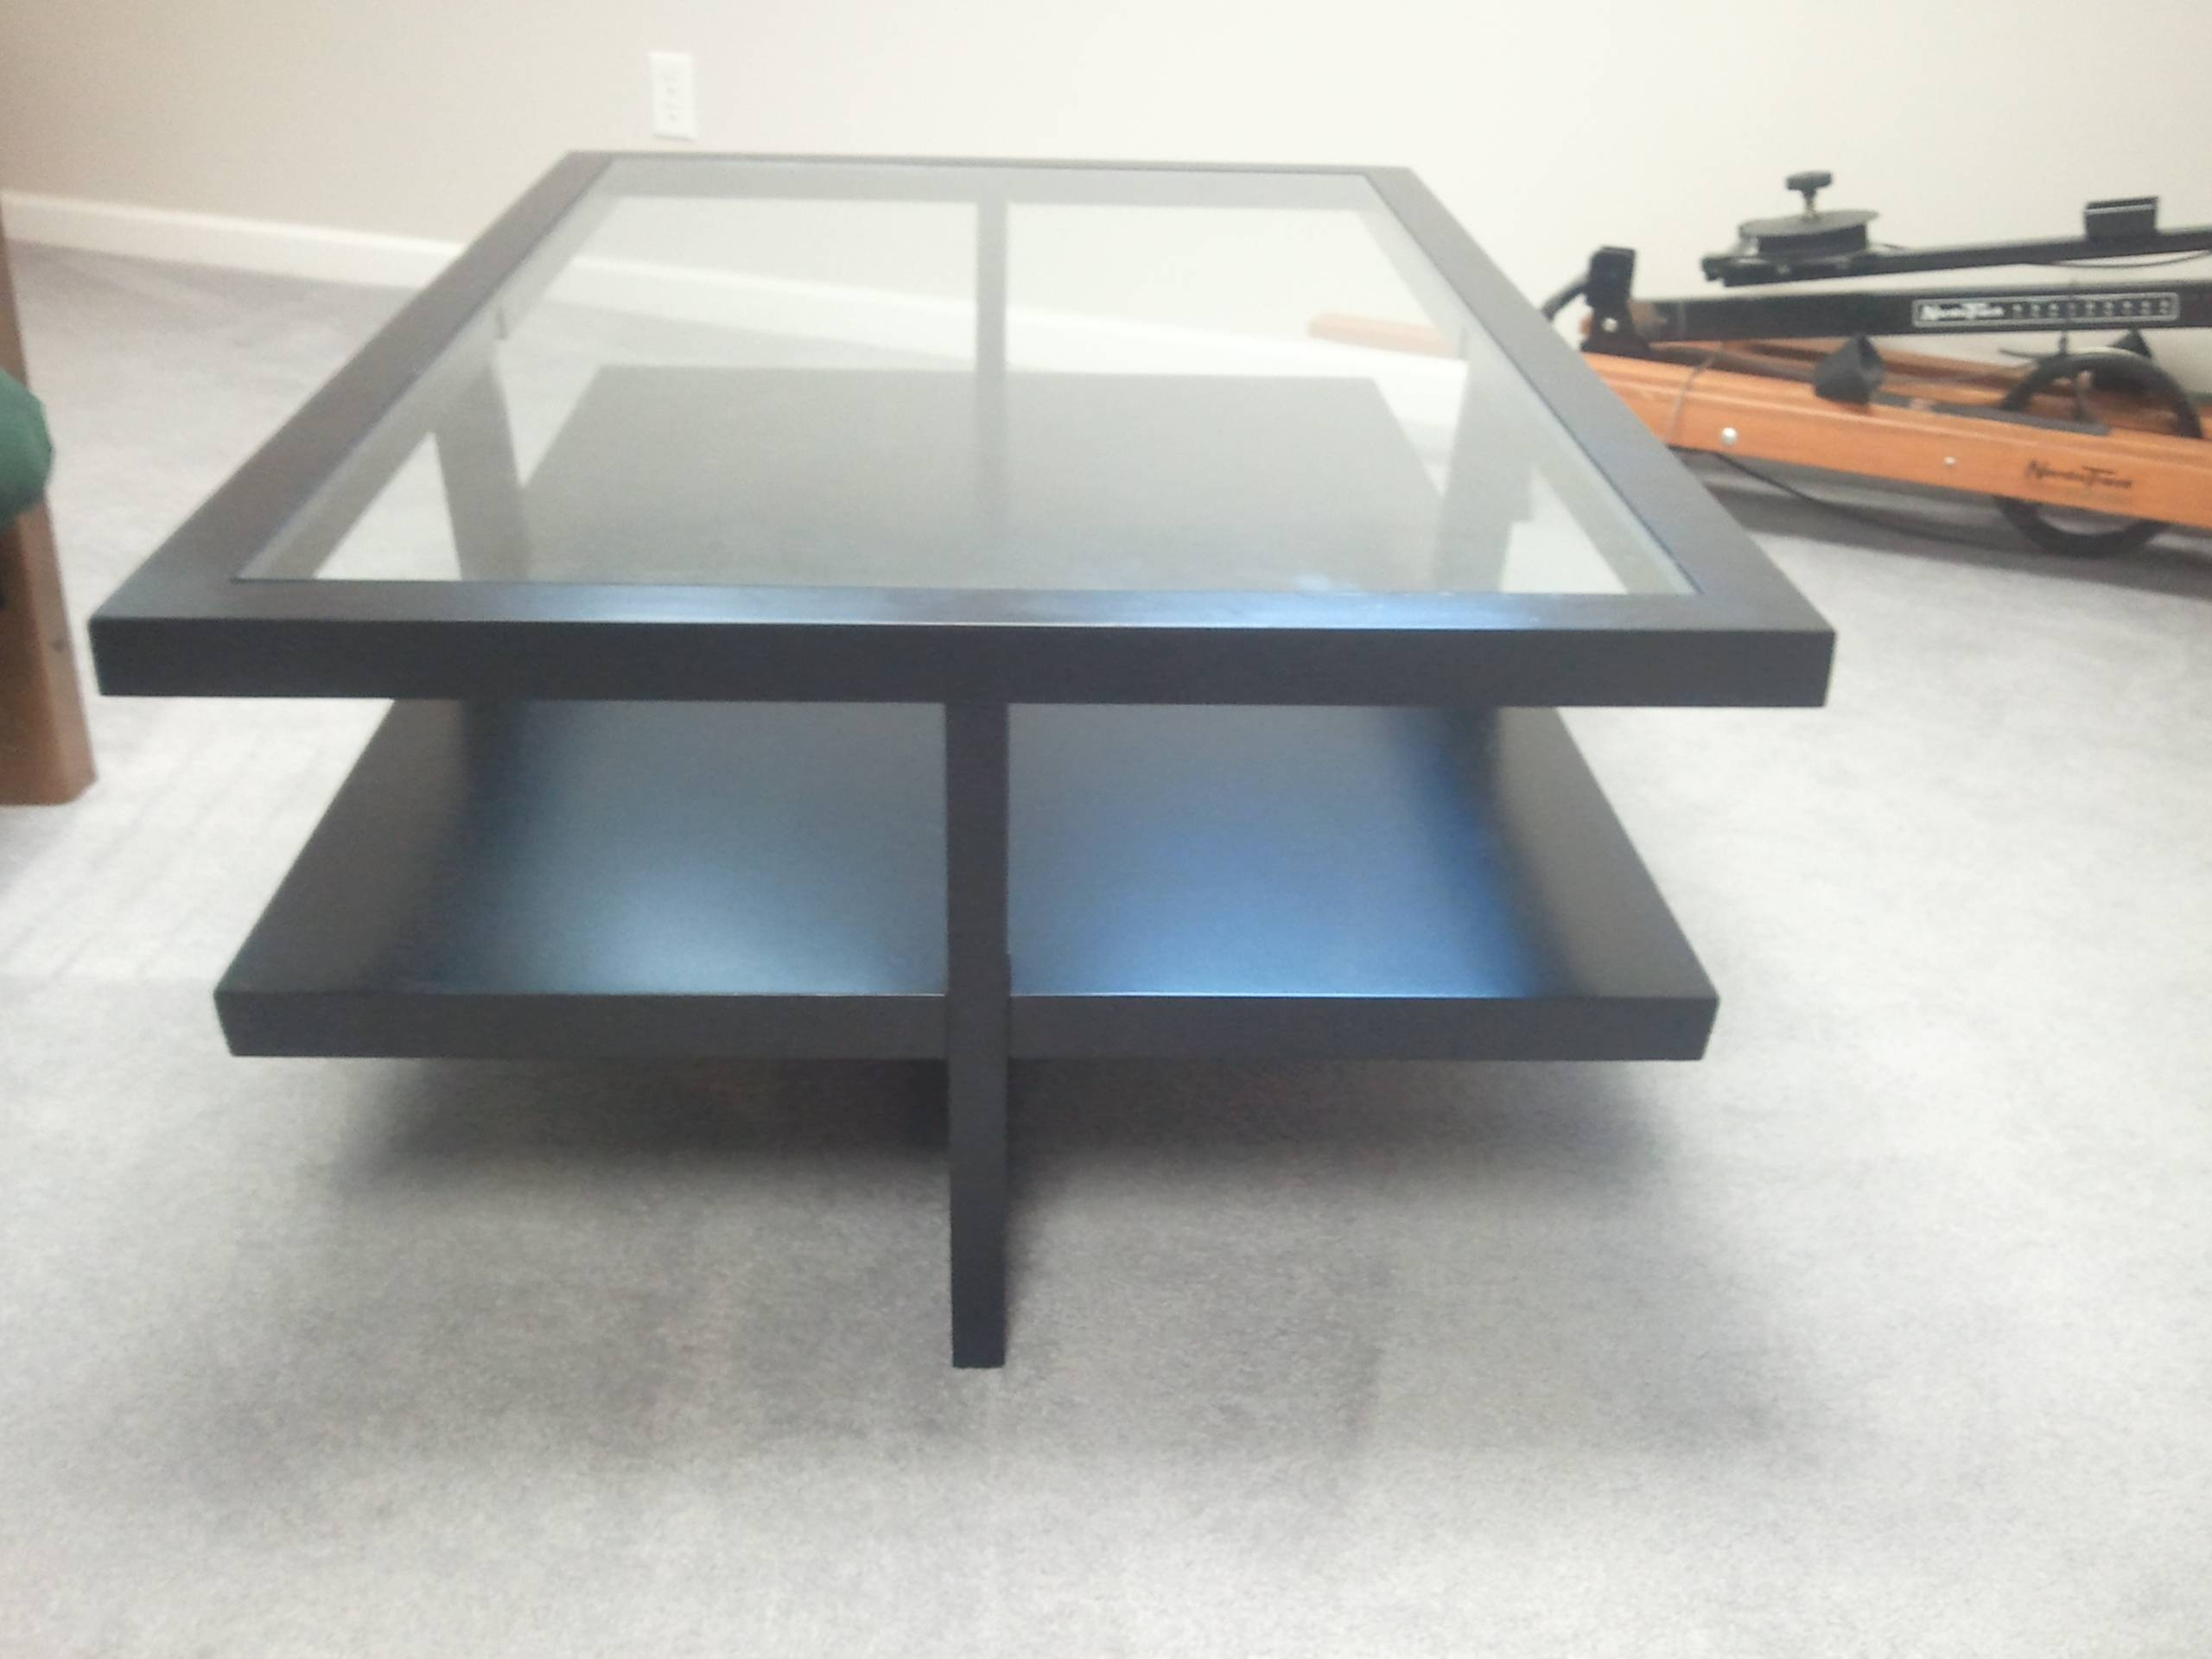 Table : Modern Black Glass Coffee Table Modern Compact Modern in Modern Black Glass Coffee Table (Image 14 of 15)